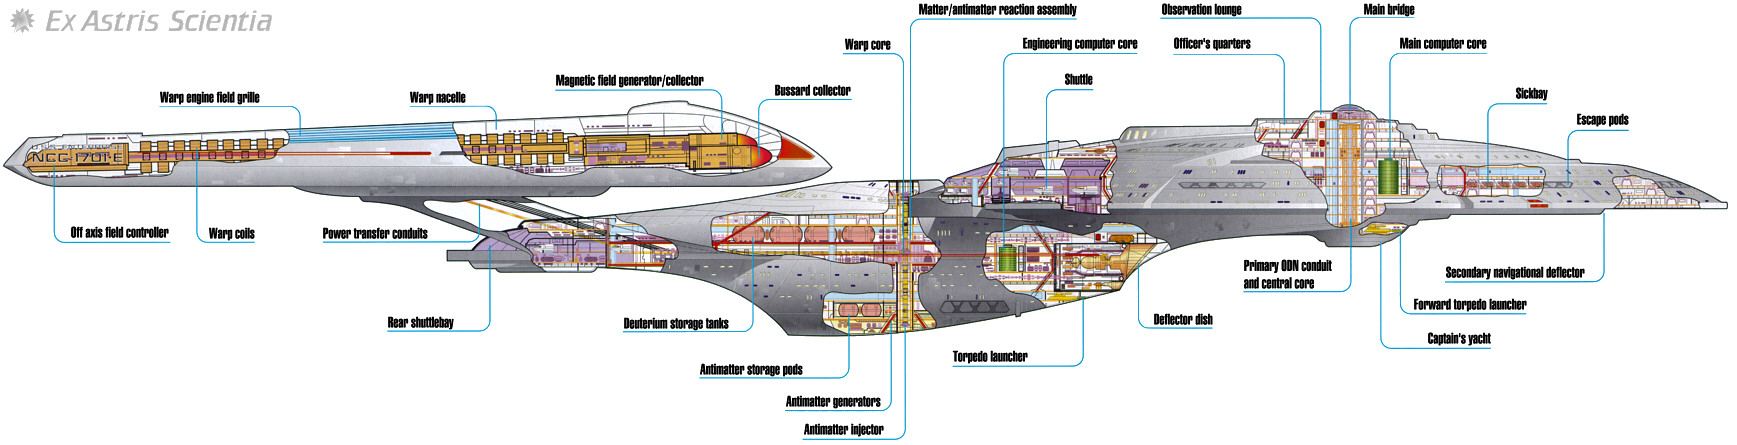 Ex Astris Scientia - Starship Gallery - Sovereign on cylon fighter schematics, starbase schematics, mecha schematics, space schematics, train schematics, macross sdf-1 schematics,